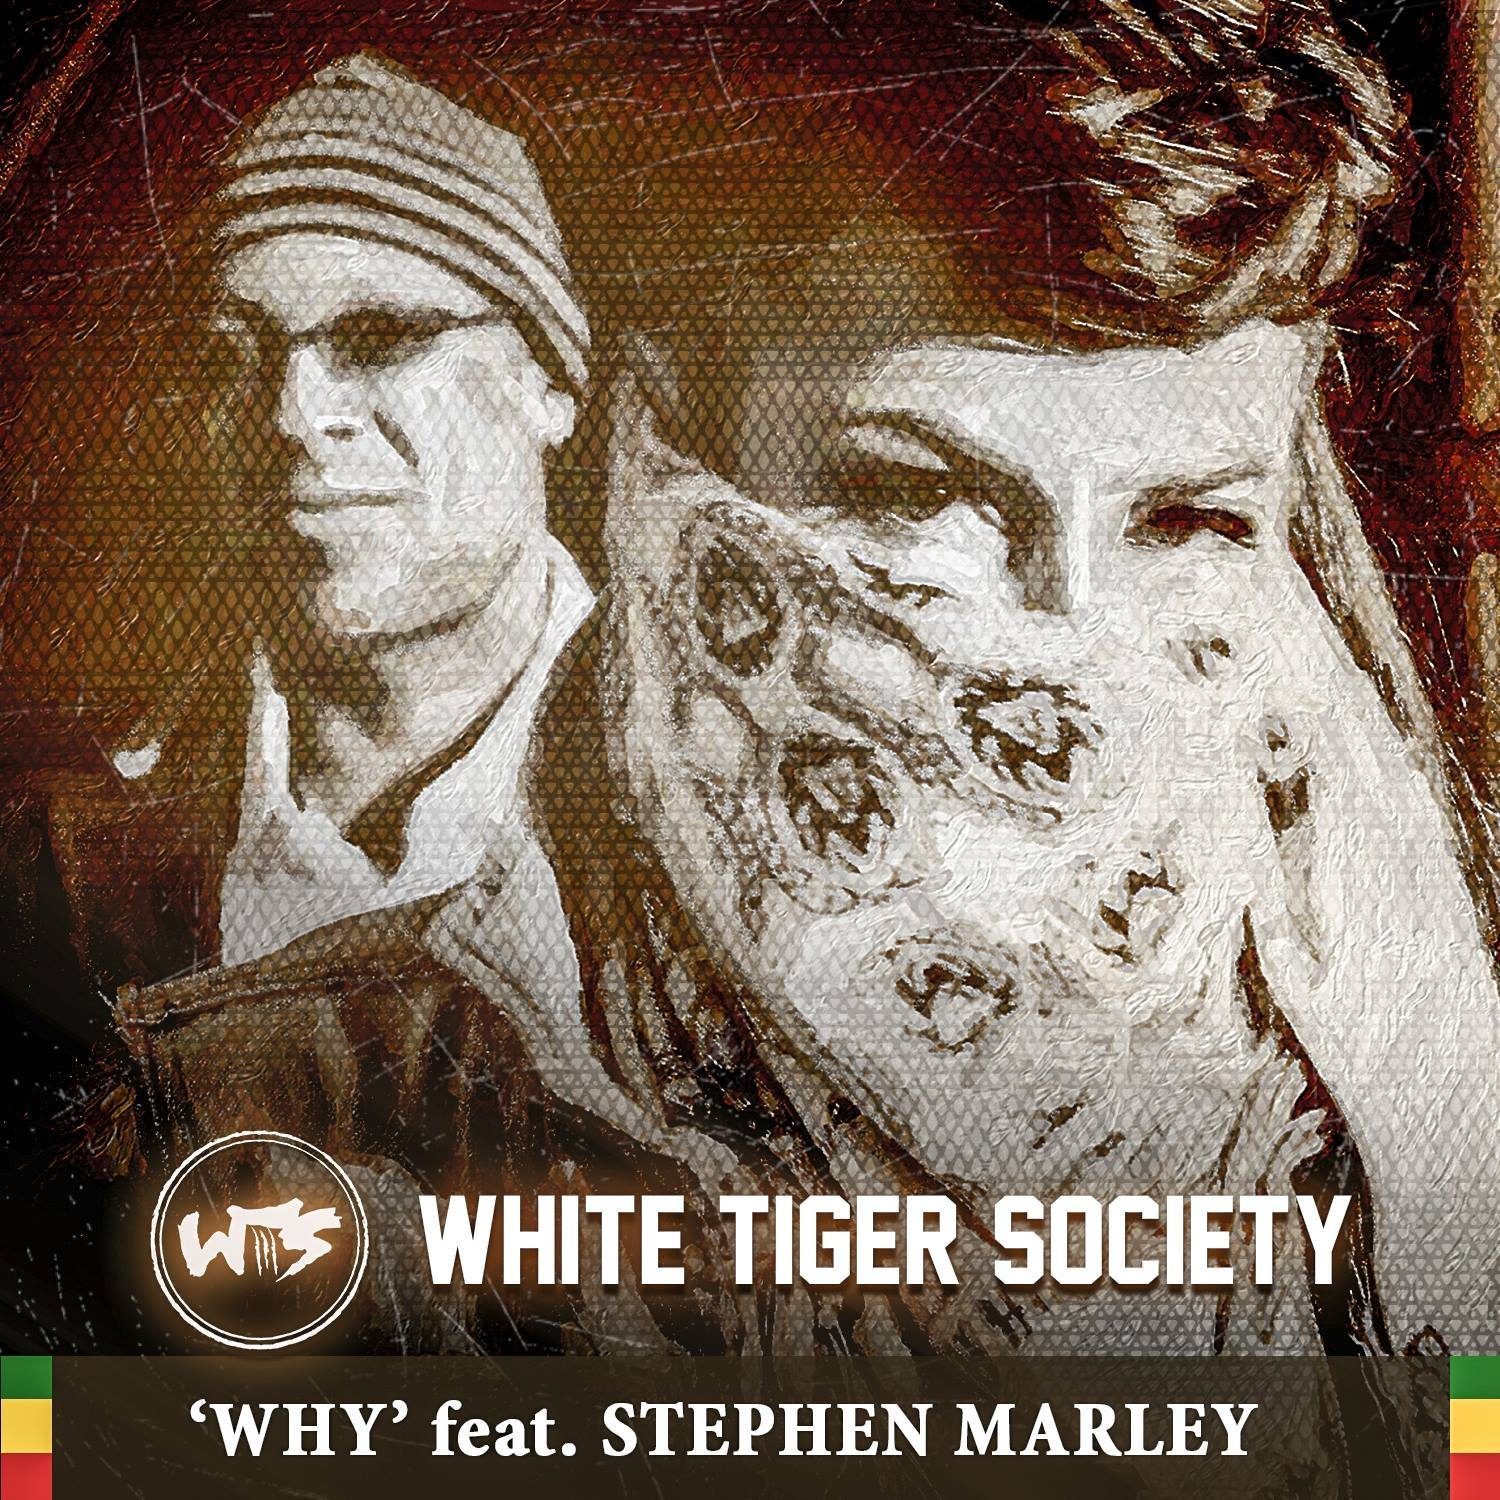 White Tiger Society feat. Stephen Marley